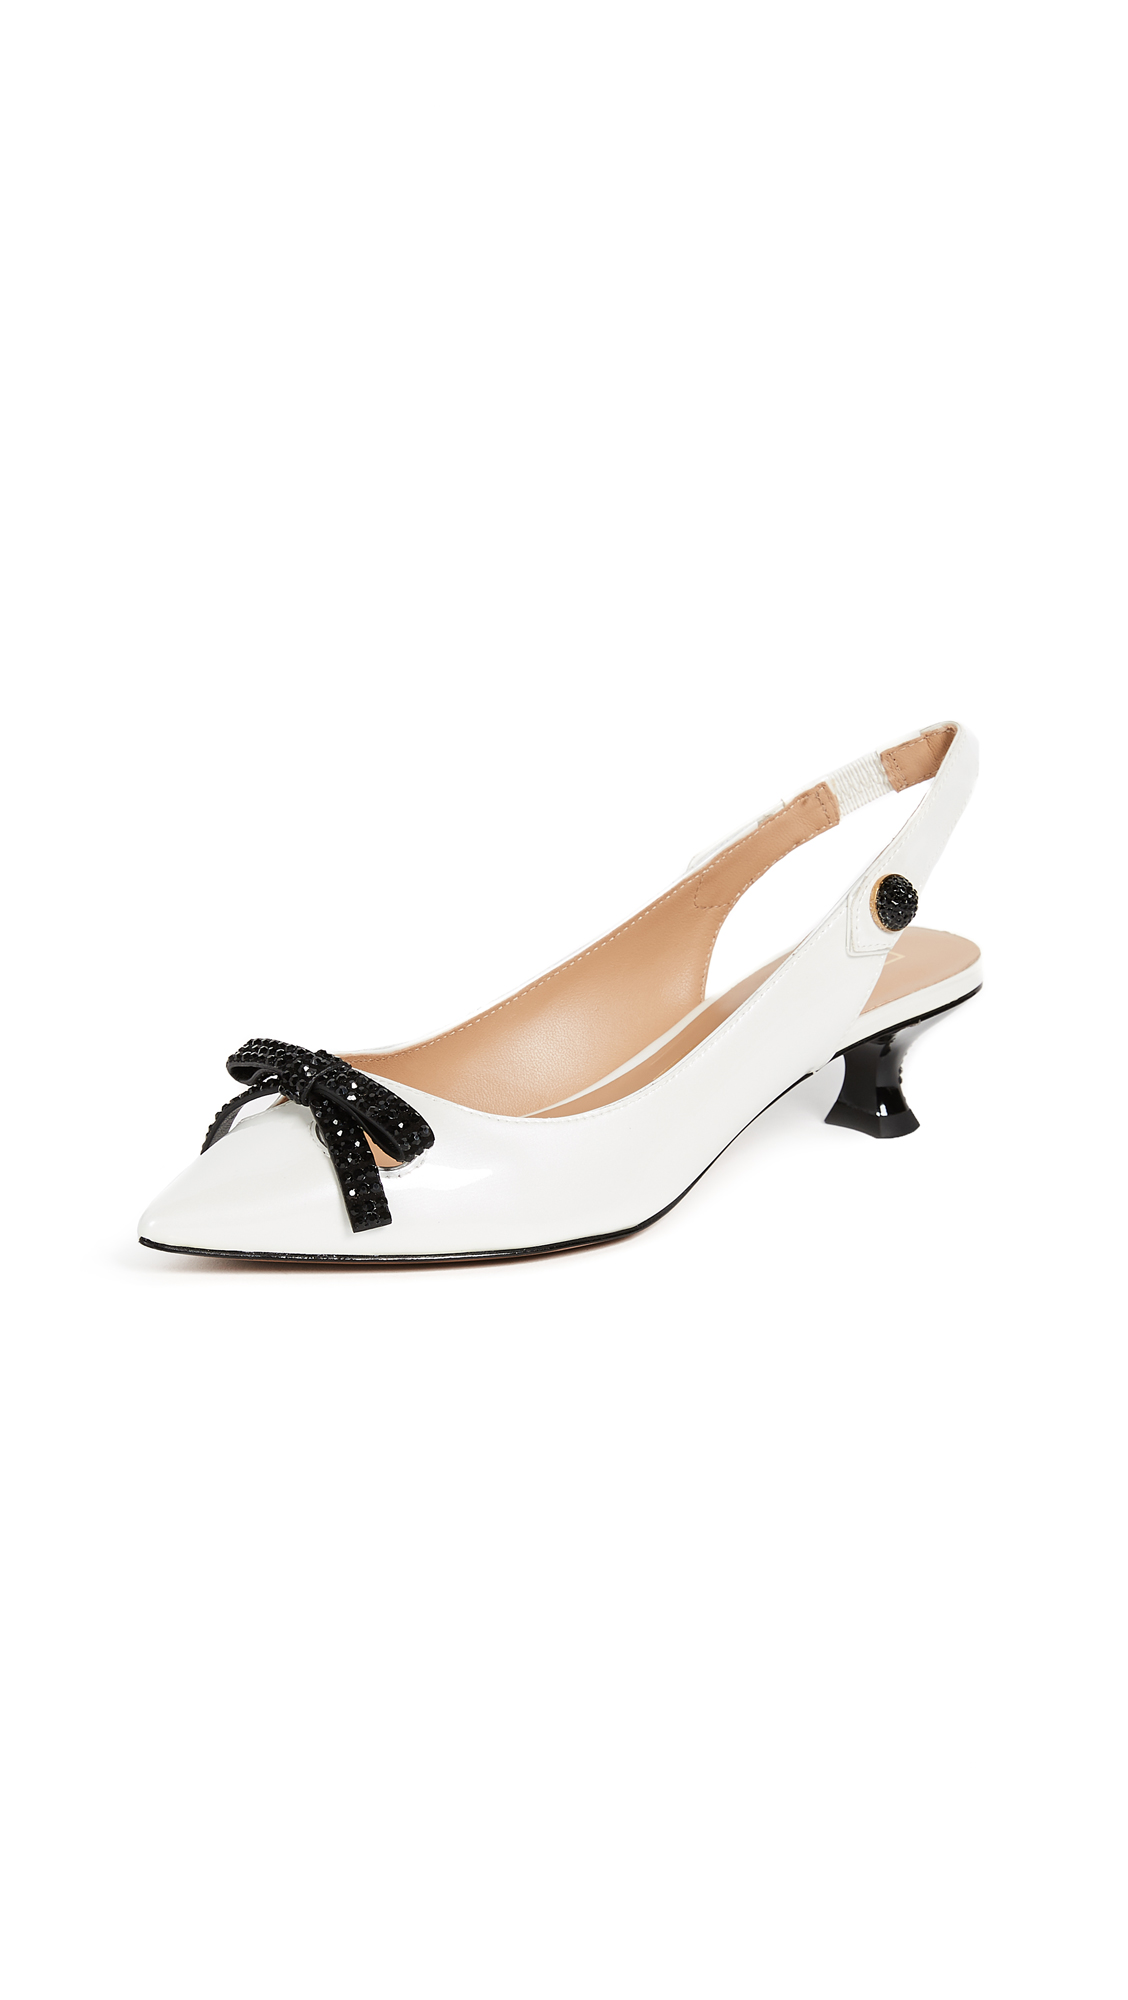 Marc Jacobs Abbey Slingback Pumps - White